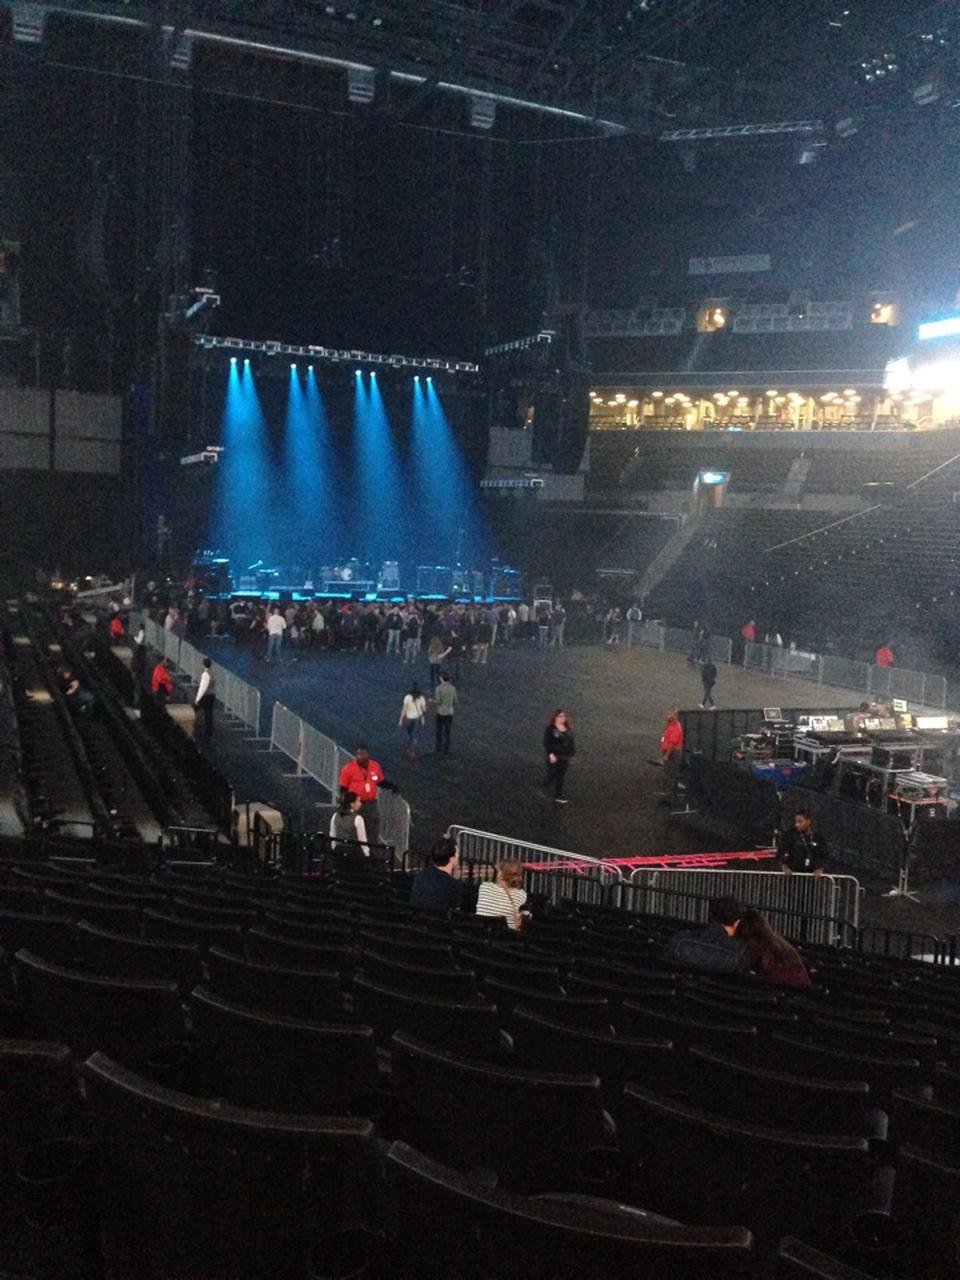 Barclays Center Section 19 Concert Seating Rateyourseats Com